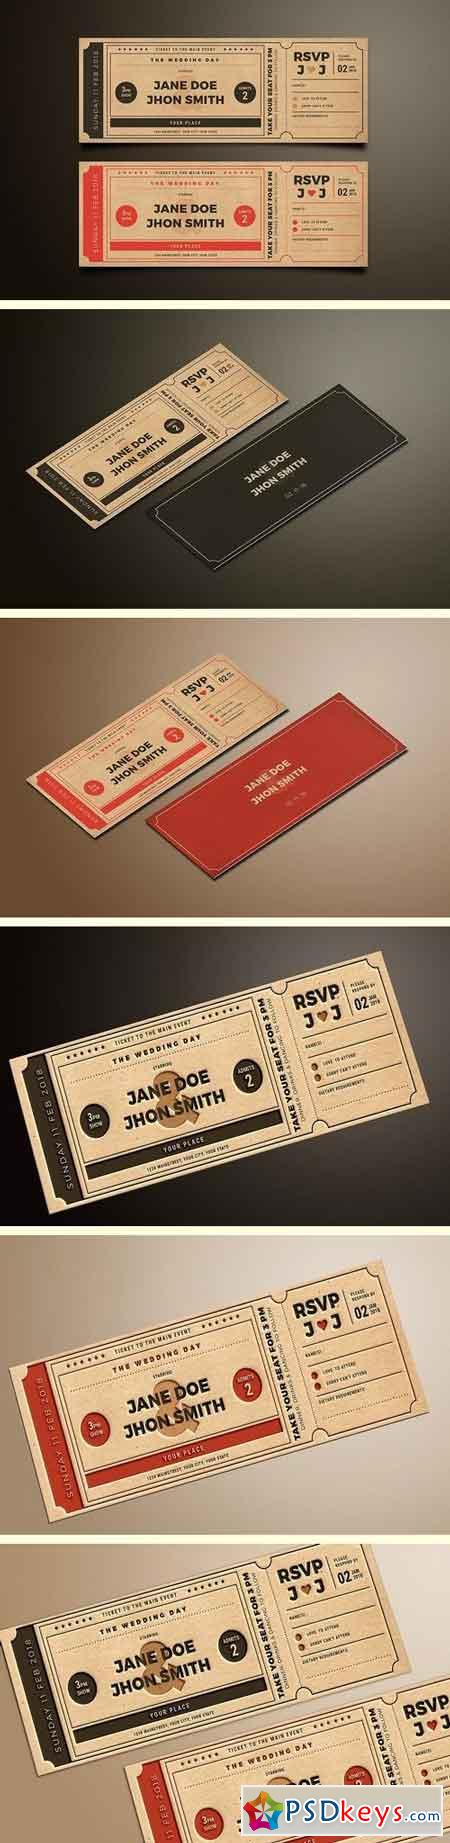 Wedding Invitation Movie Ticket 1486551